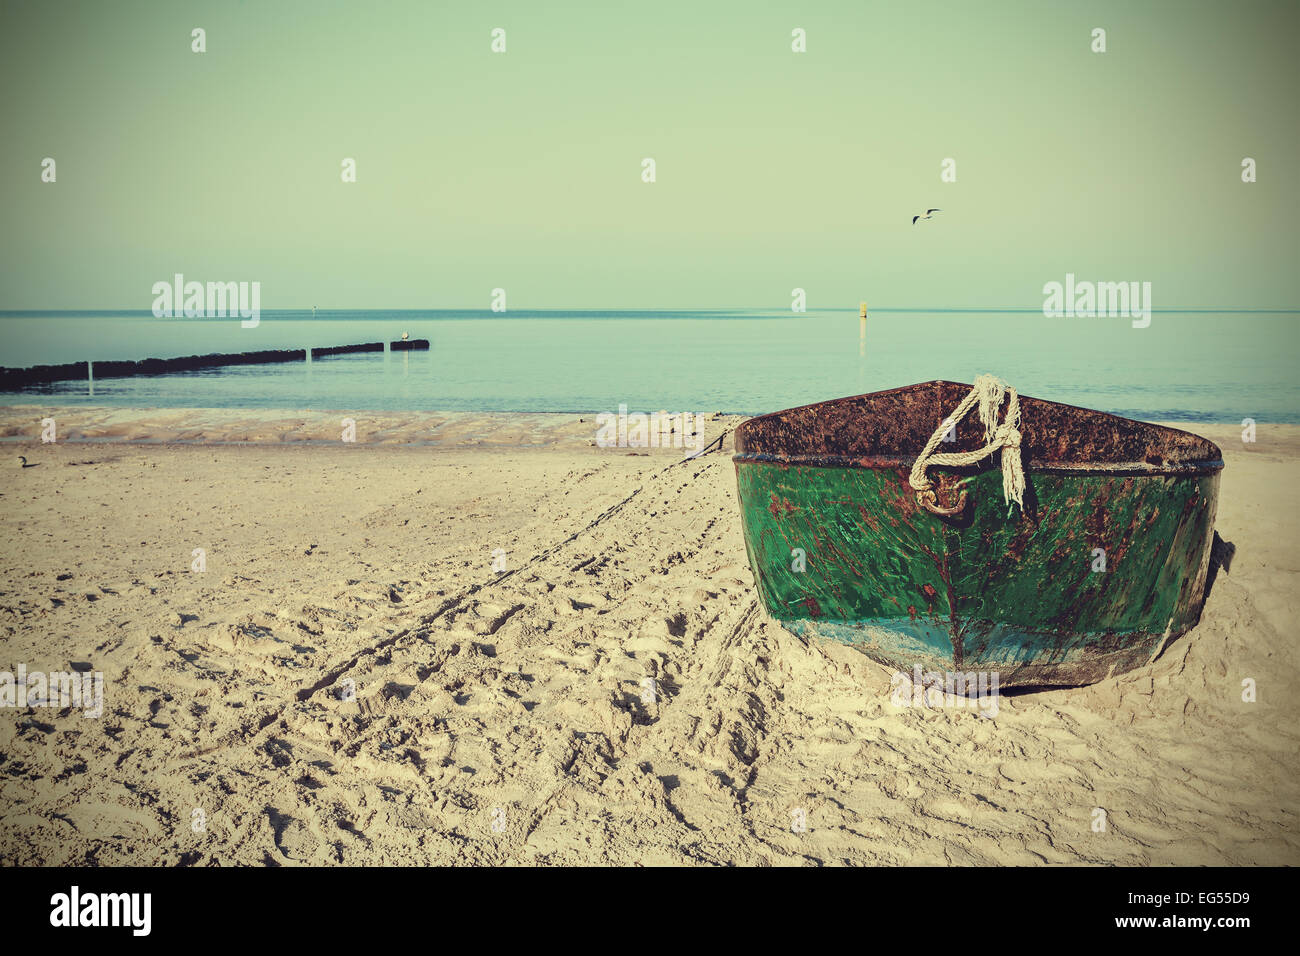 Retro filtered picture of an old rusty steel boat on the beach. - Stock Image